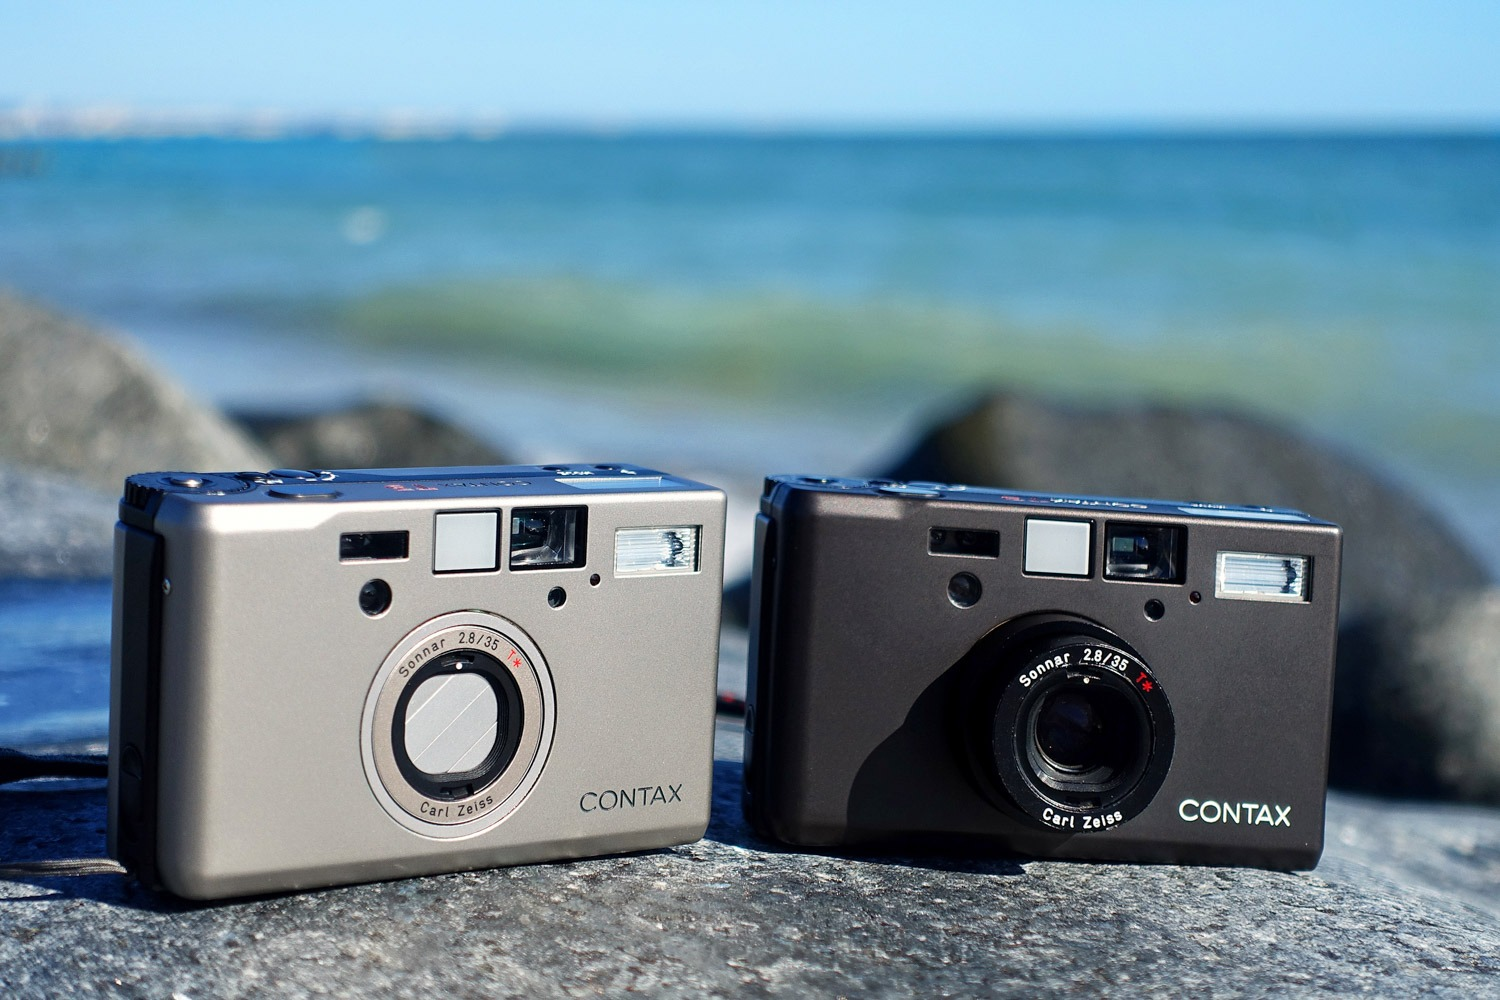 Compact camera mega test: The Contax T3, a super-rich hipster's dream